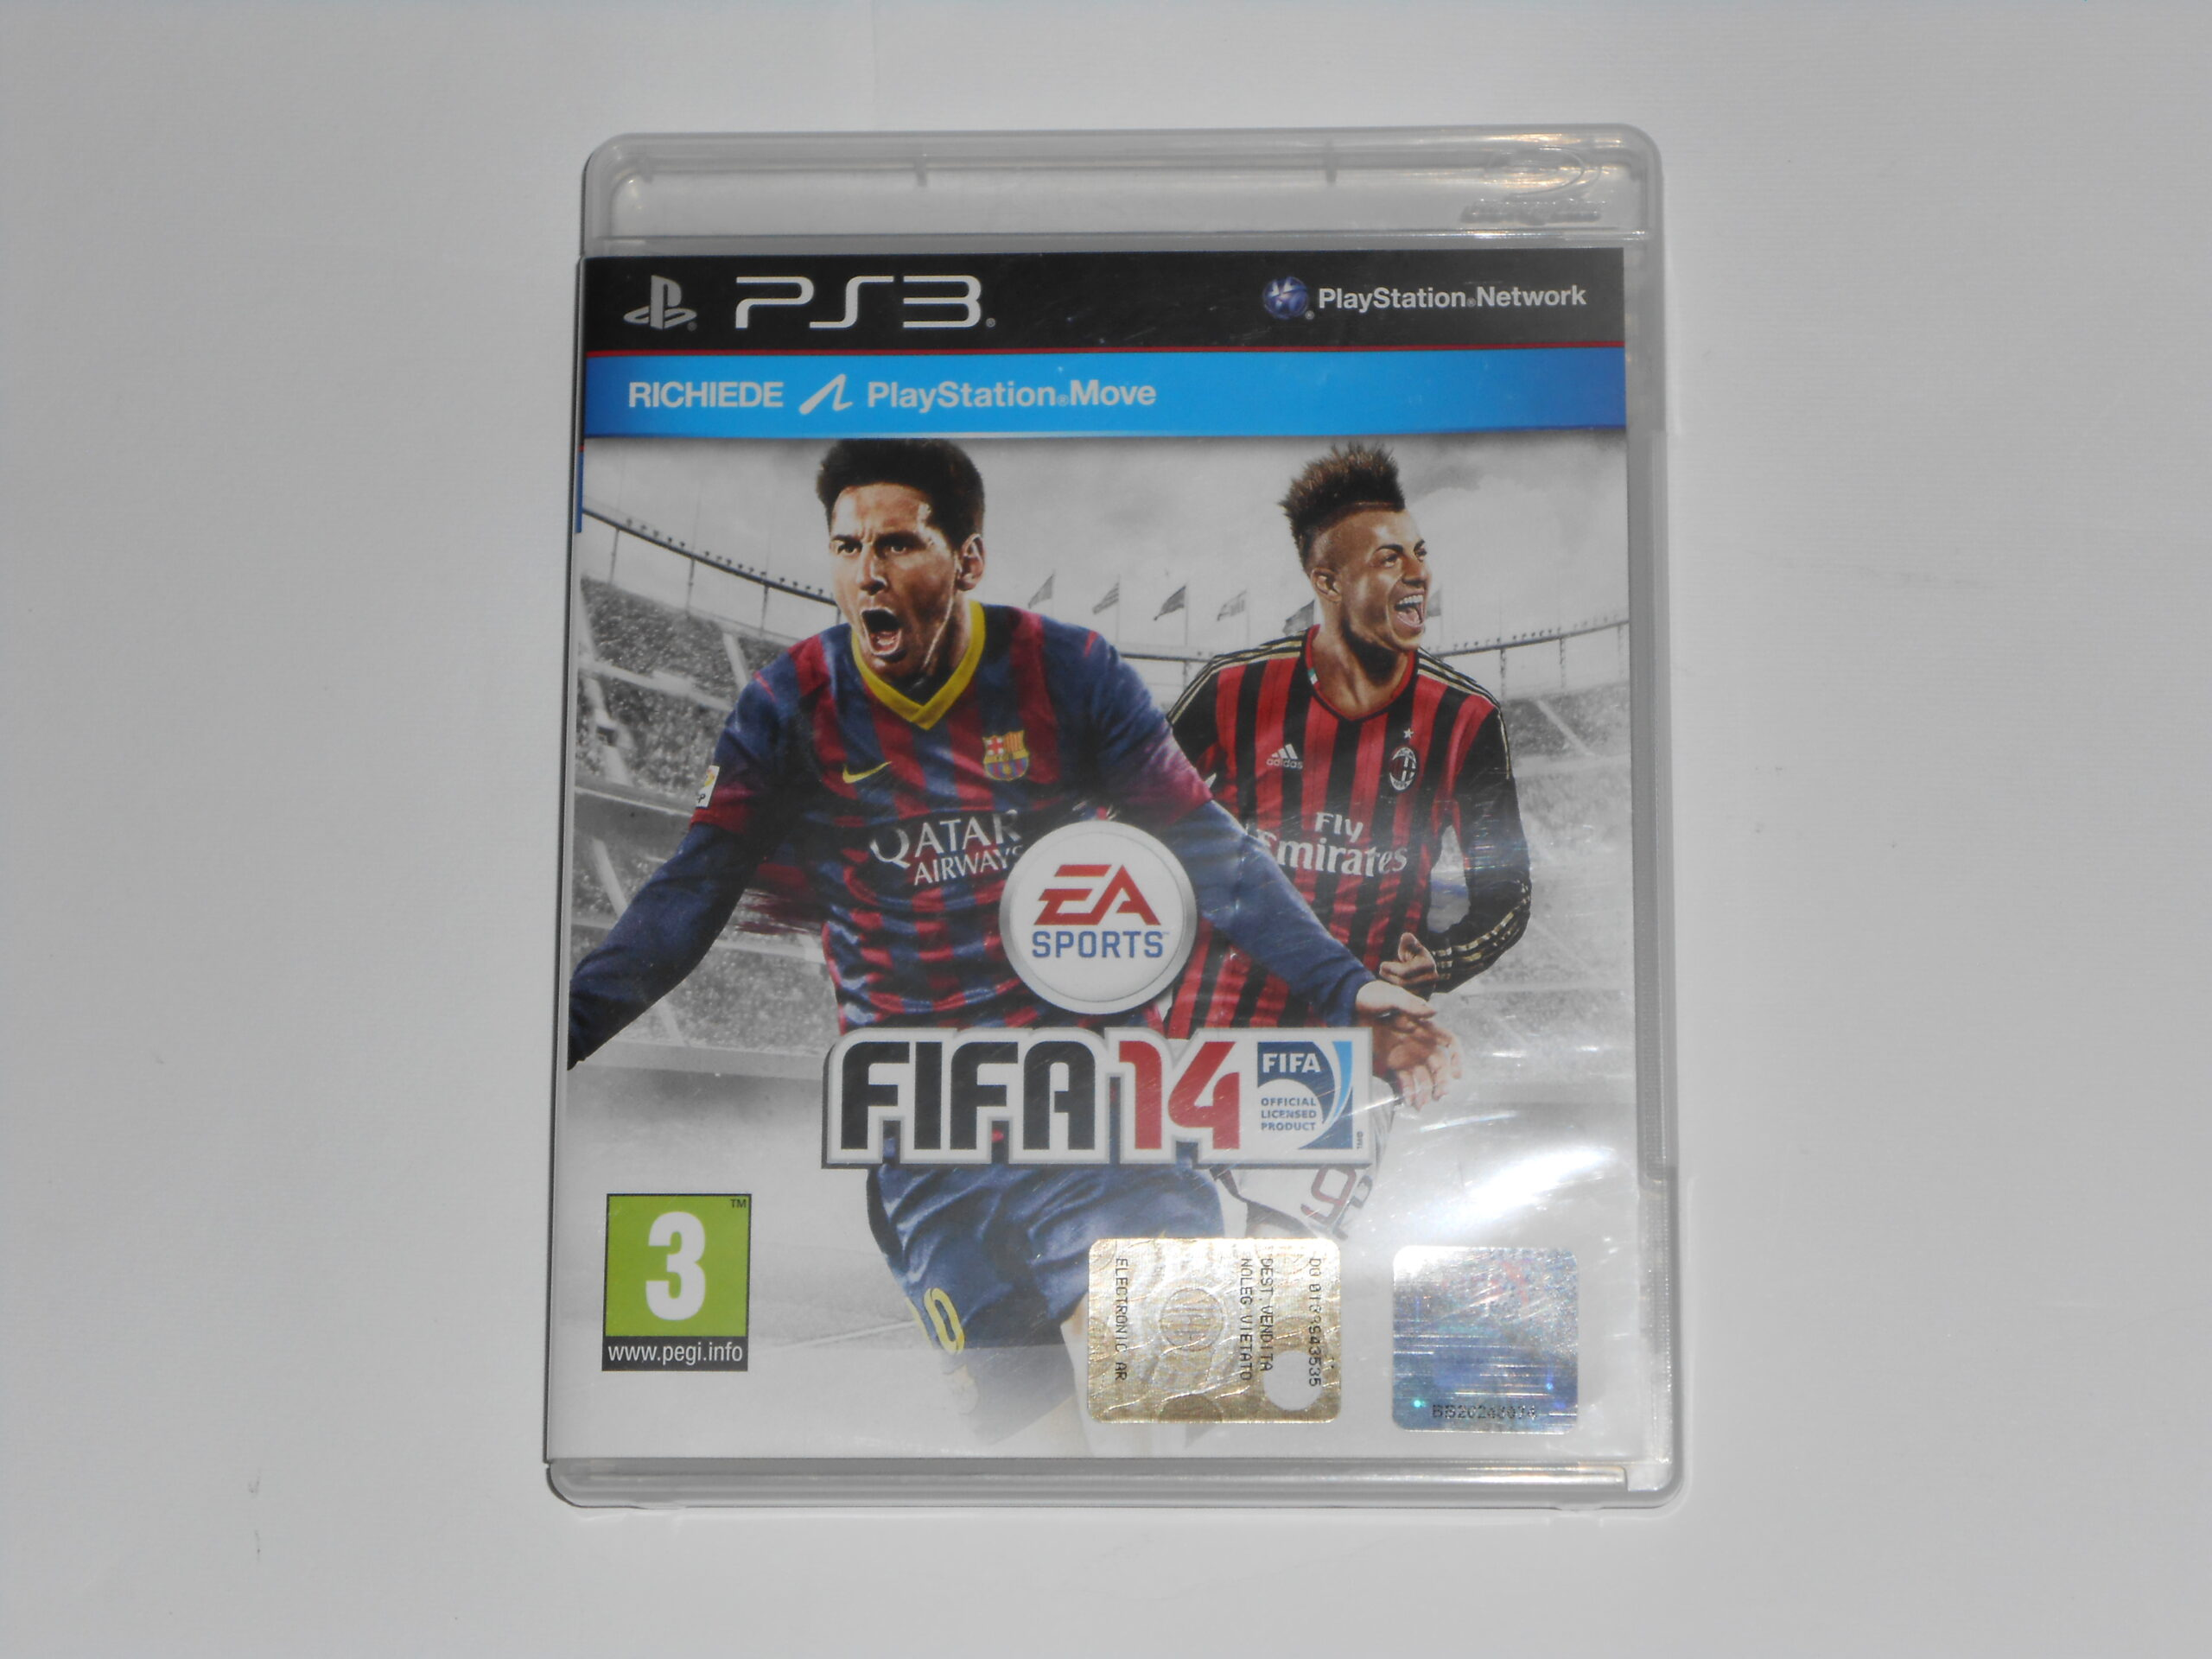 Vendo gioco Fifa 14 Play Station 3